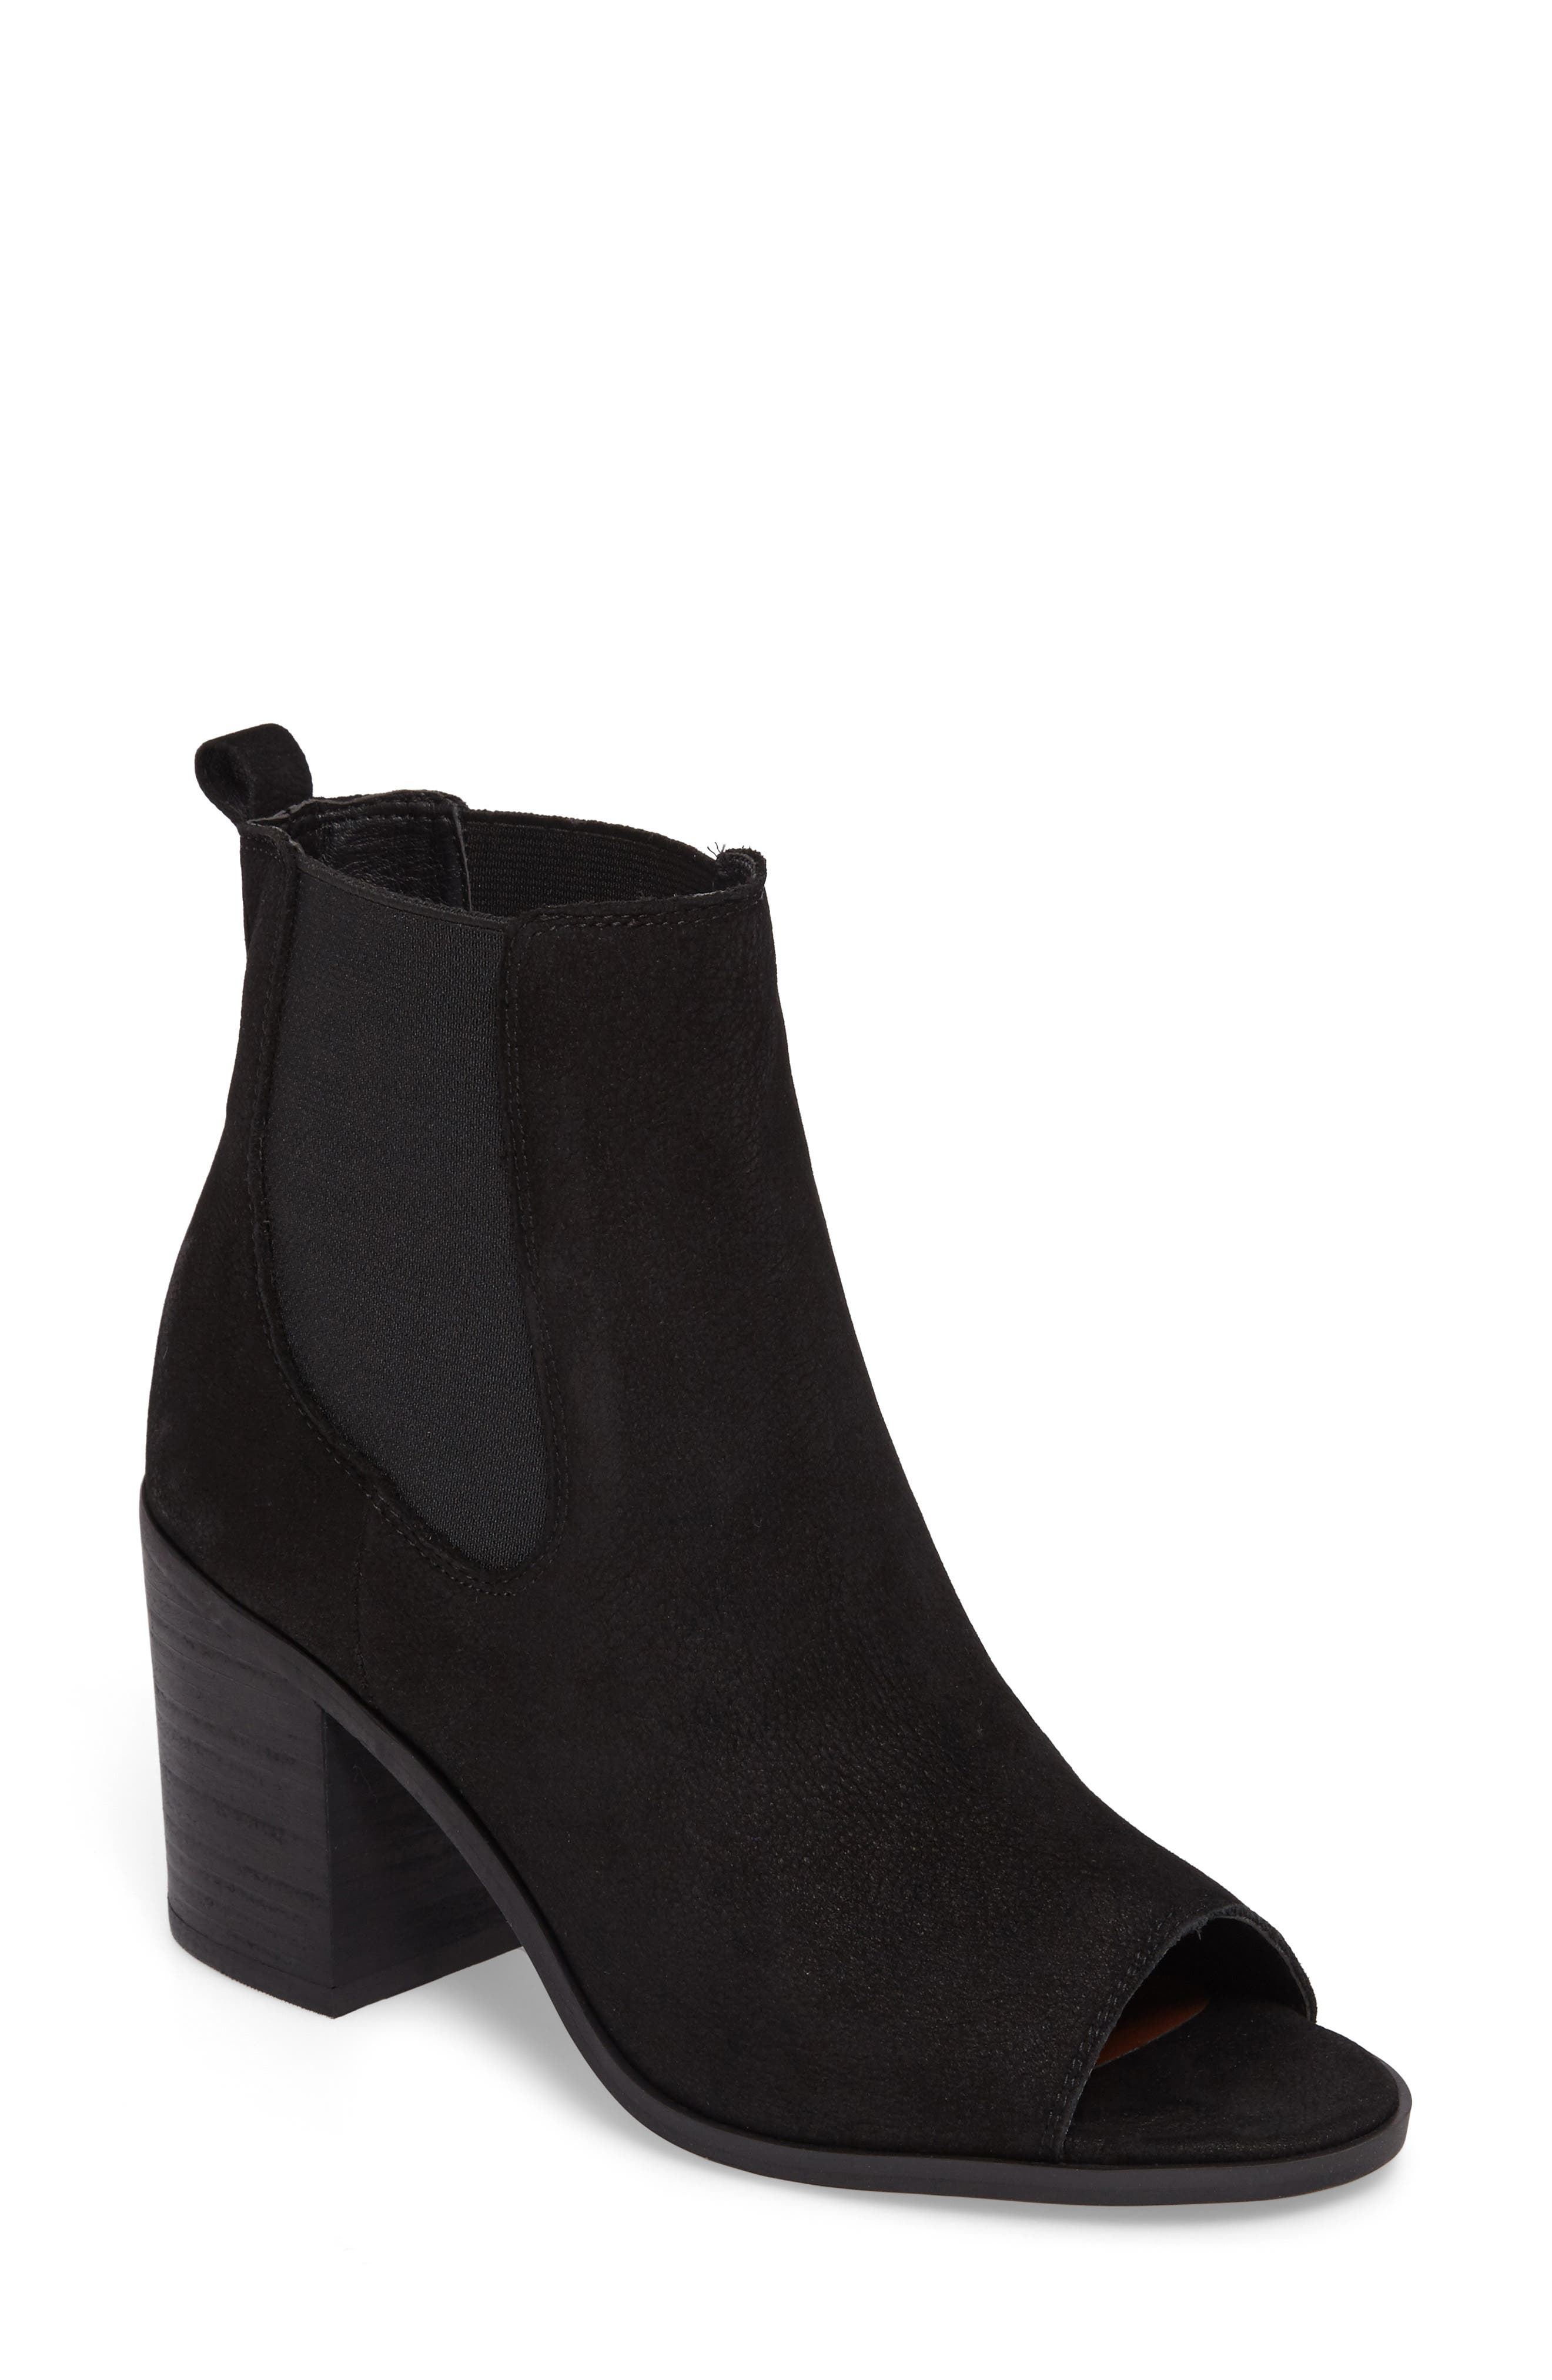 Kassidy Open Toe Chelsea Bootie,                         Main,                         color, Black Leather